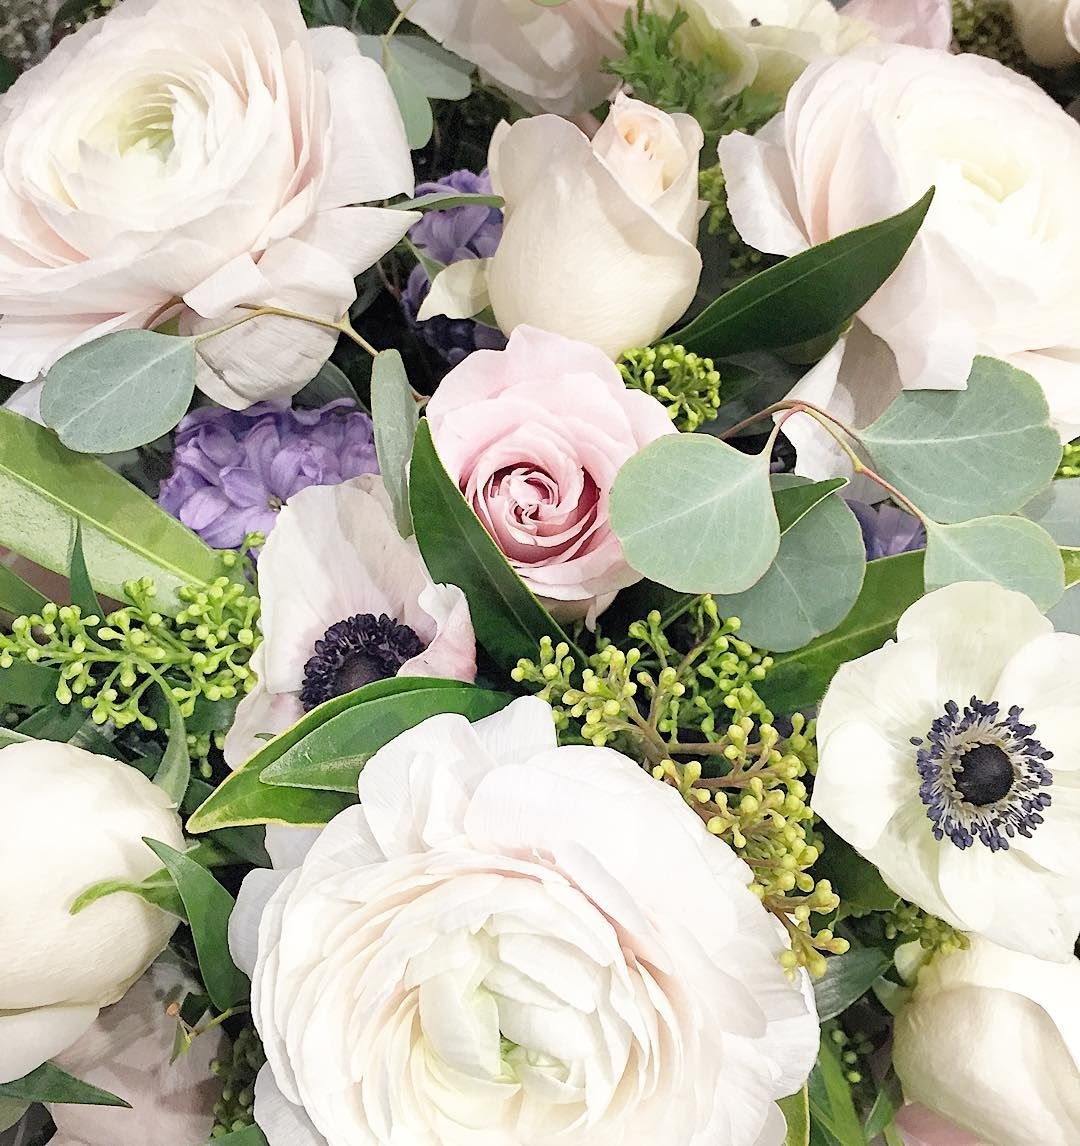 fabulous vancouver florist Sneak peek. Working on something special with @justbecausevancouver . Can't wait. #vacouverweddings #flowerfactory #proposal by @flowerfactory  #vancouverflorist #vancouverflorist #vancouverwedding #vancouverweddingdosanddonts